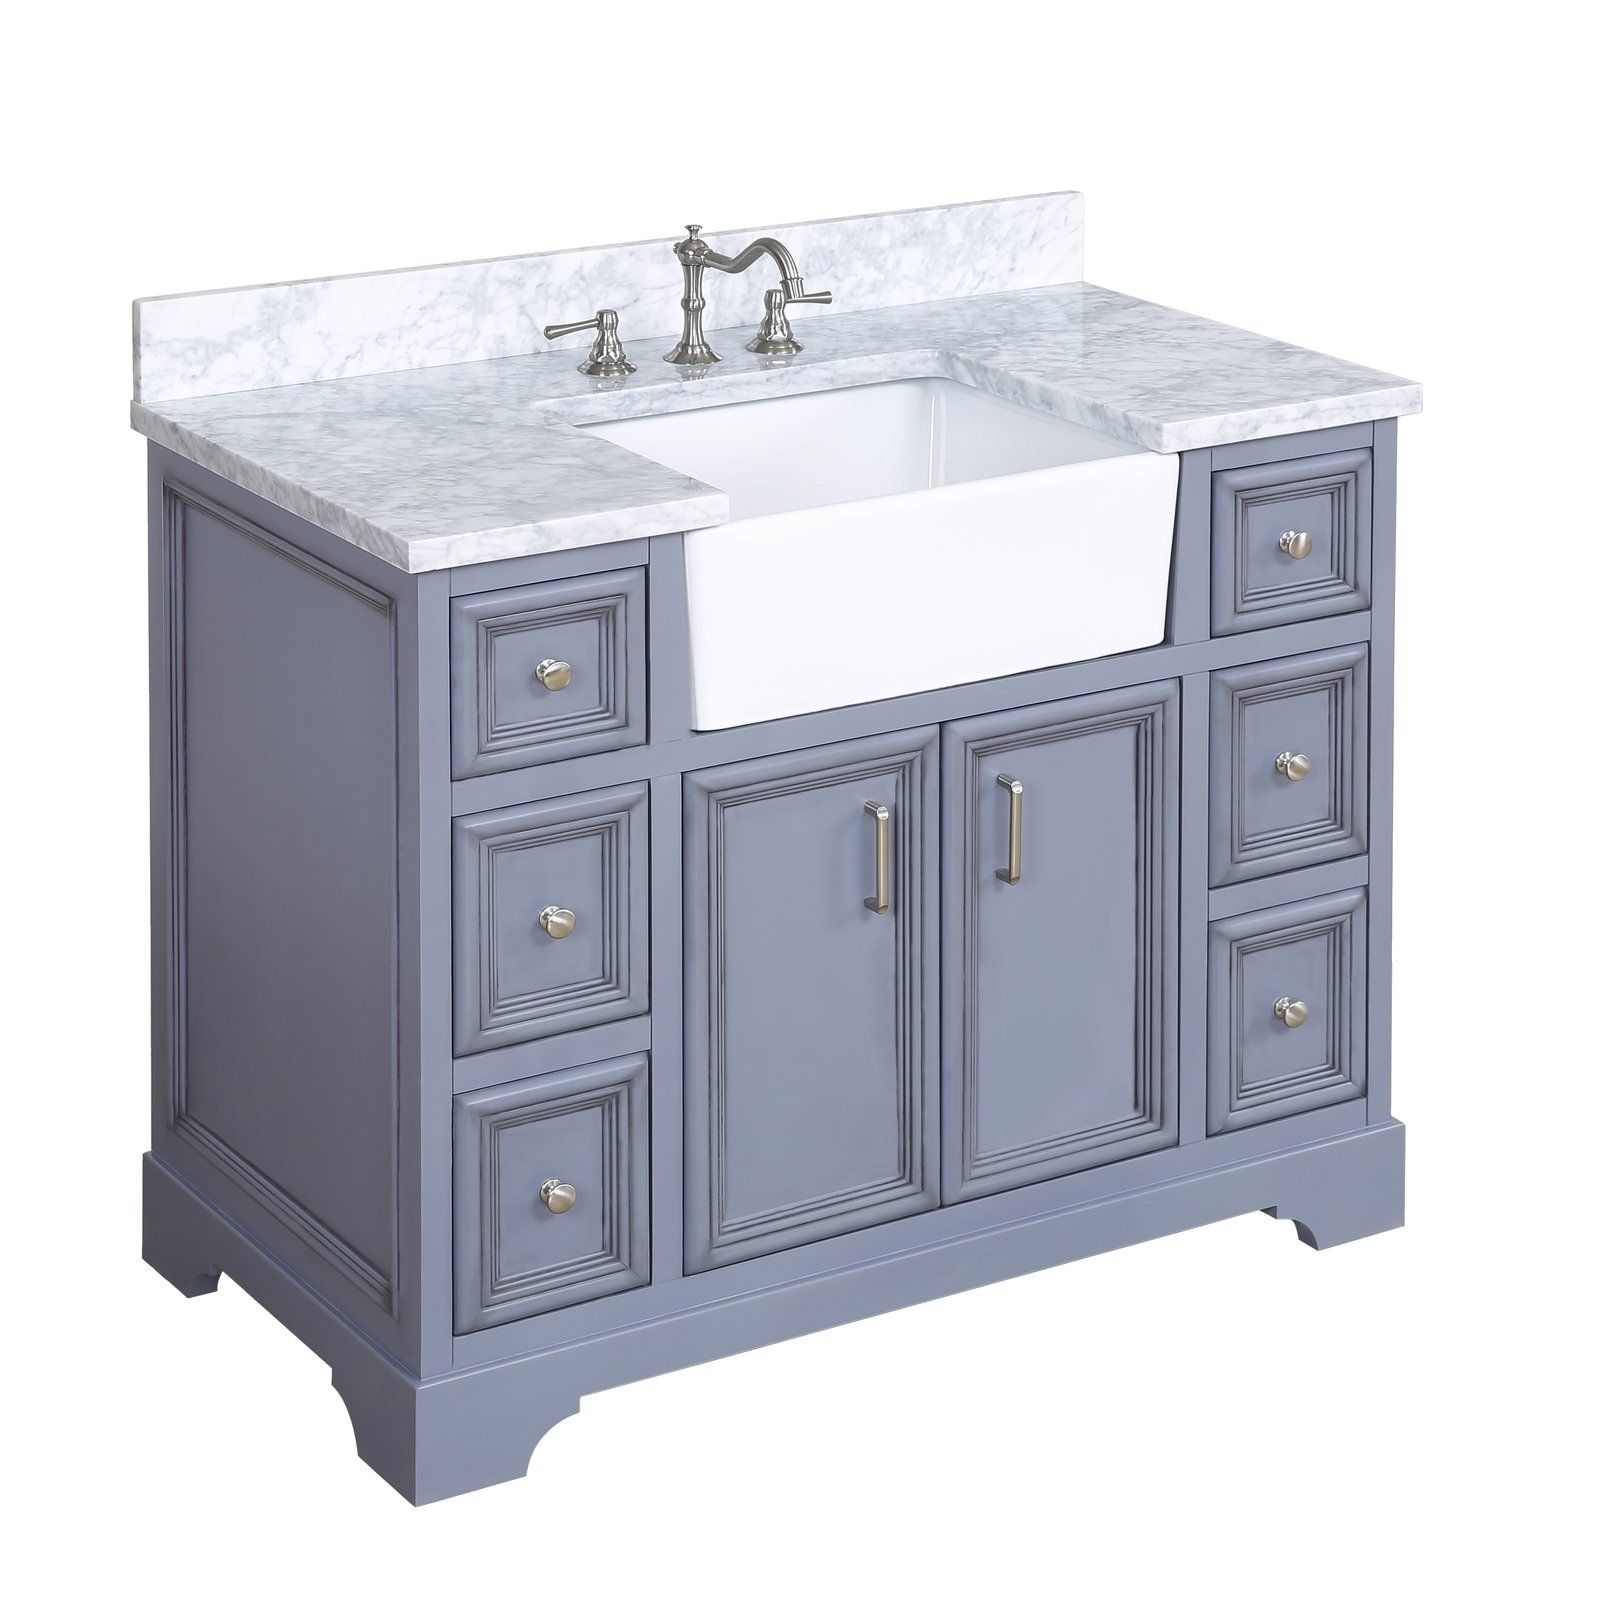 Zelda 42inch Farmhouse Vanity with Carrara Marble Top in